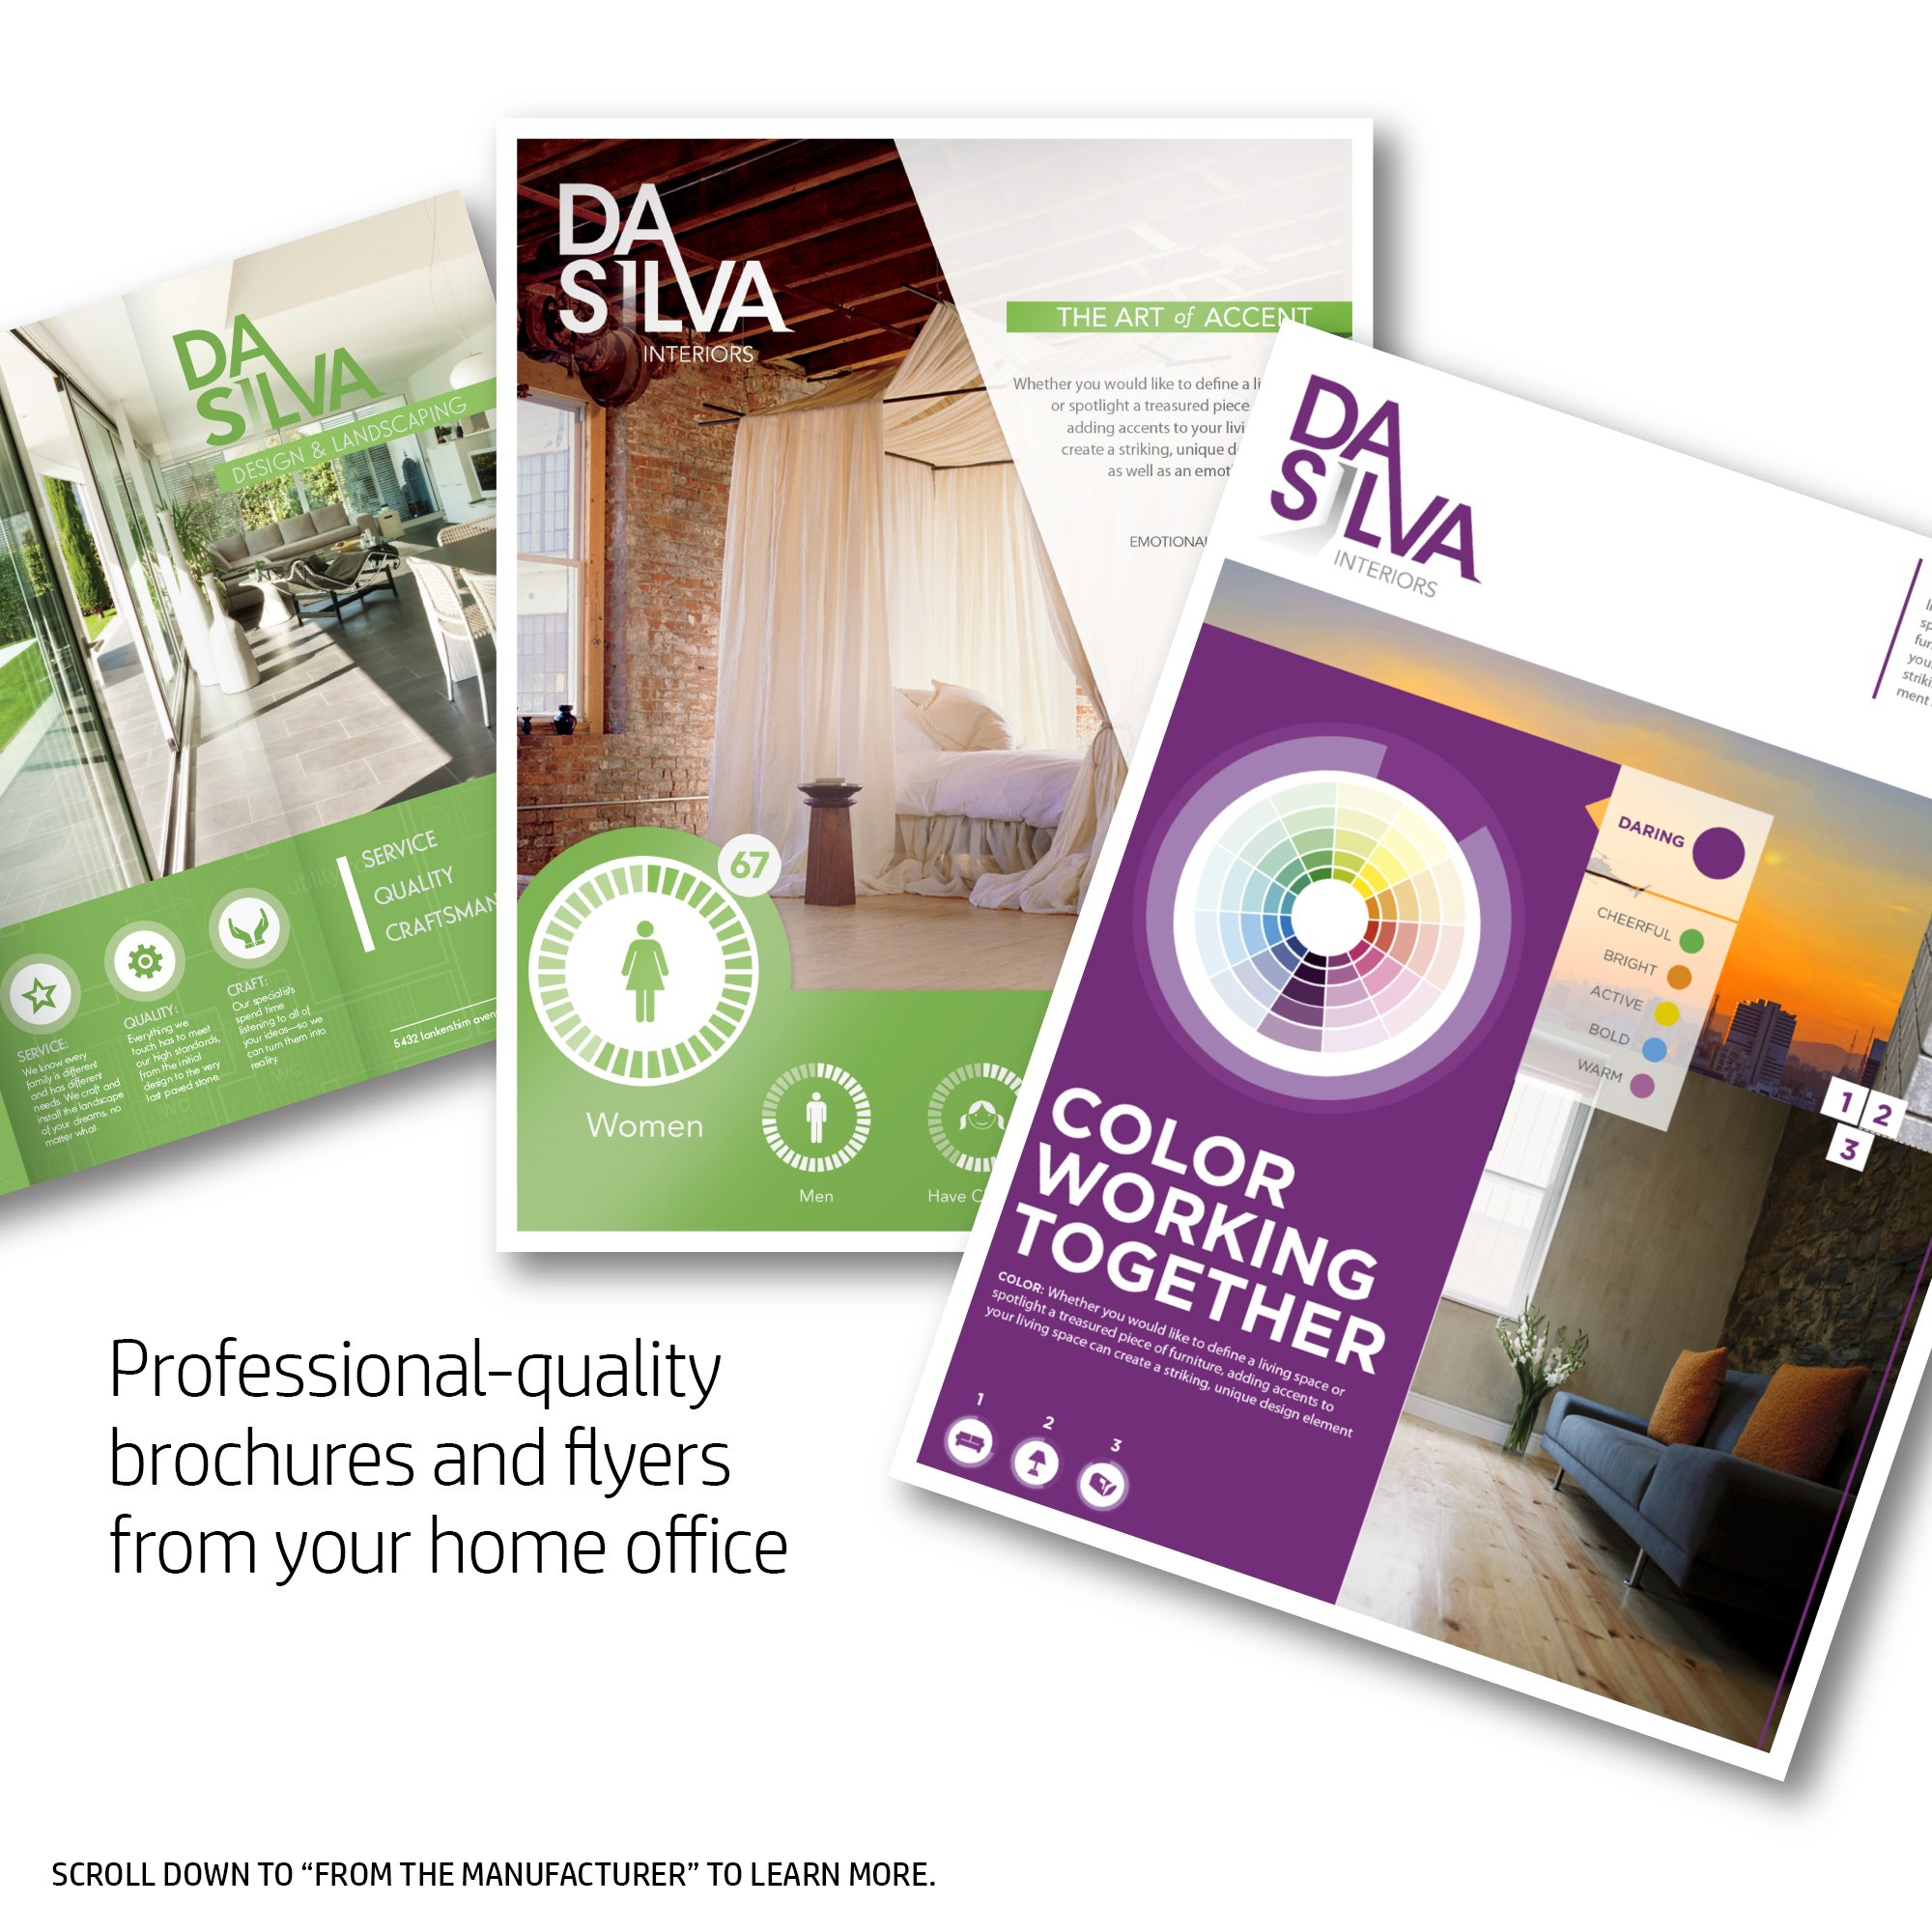 HP Q8824A Brochure Paper for Laser Printer, Matte, 8.5x11, 100 Sheets by HP (Image #3)